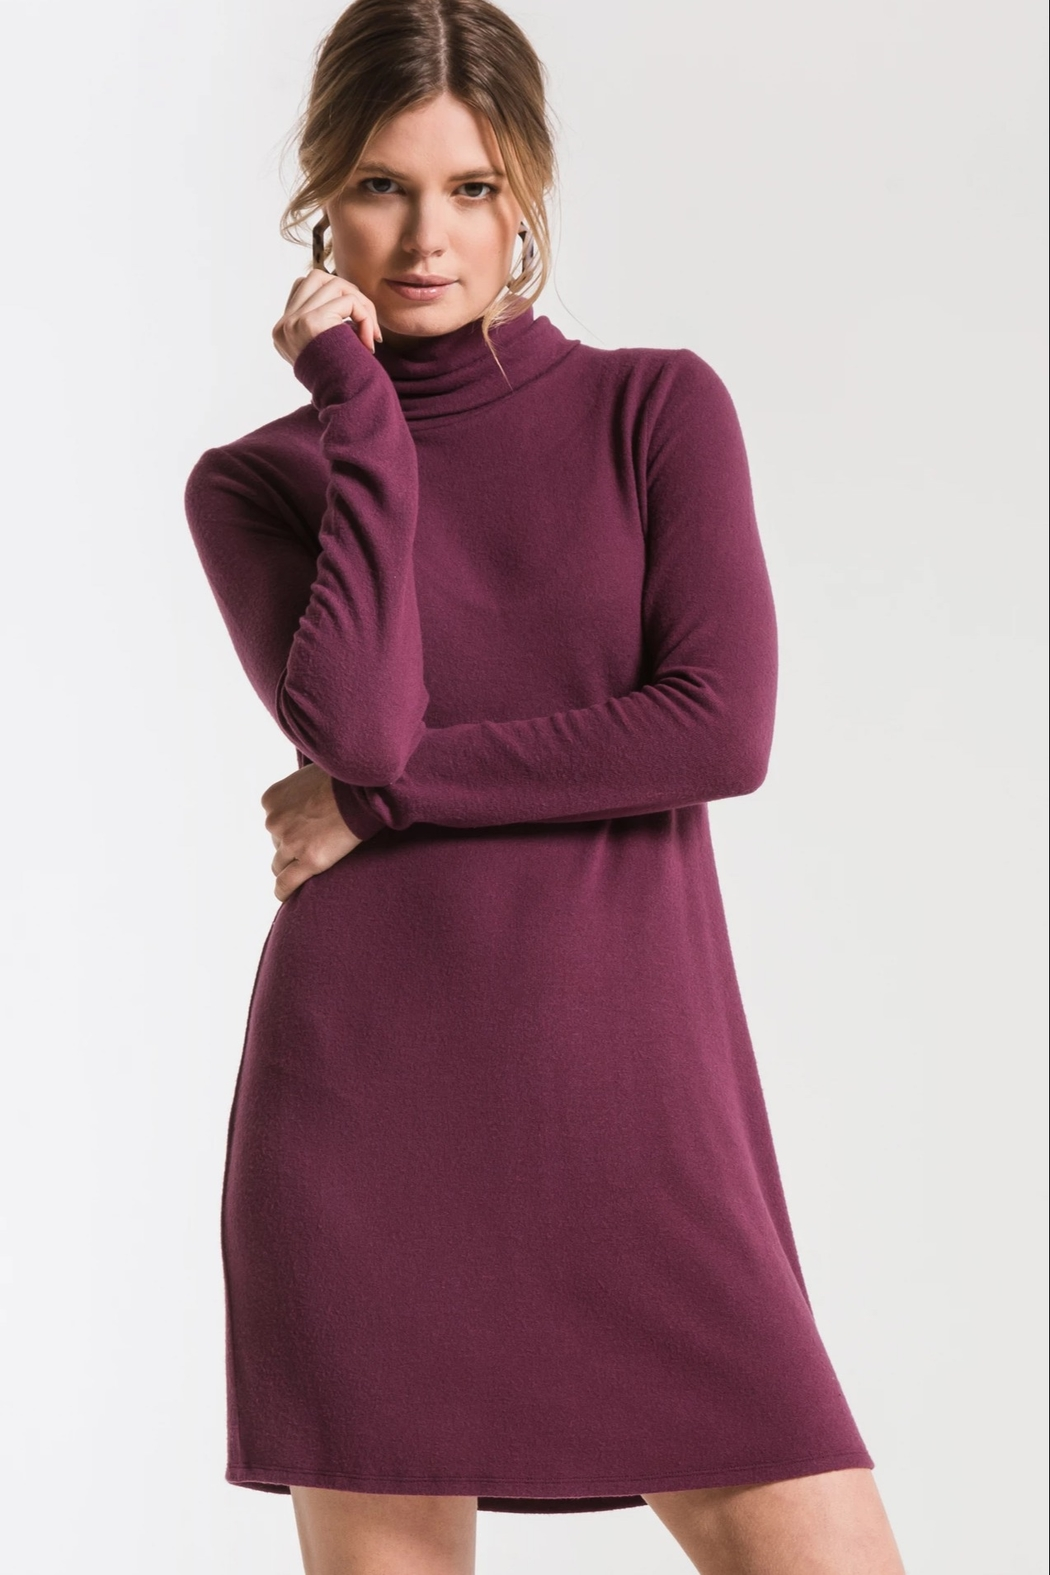 z supply Sweater Turtleneck Dress - Front Cropped Image